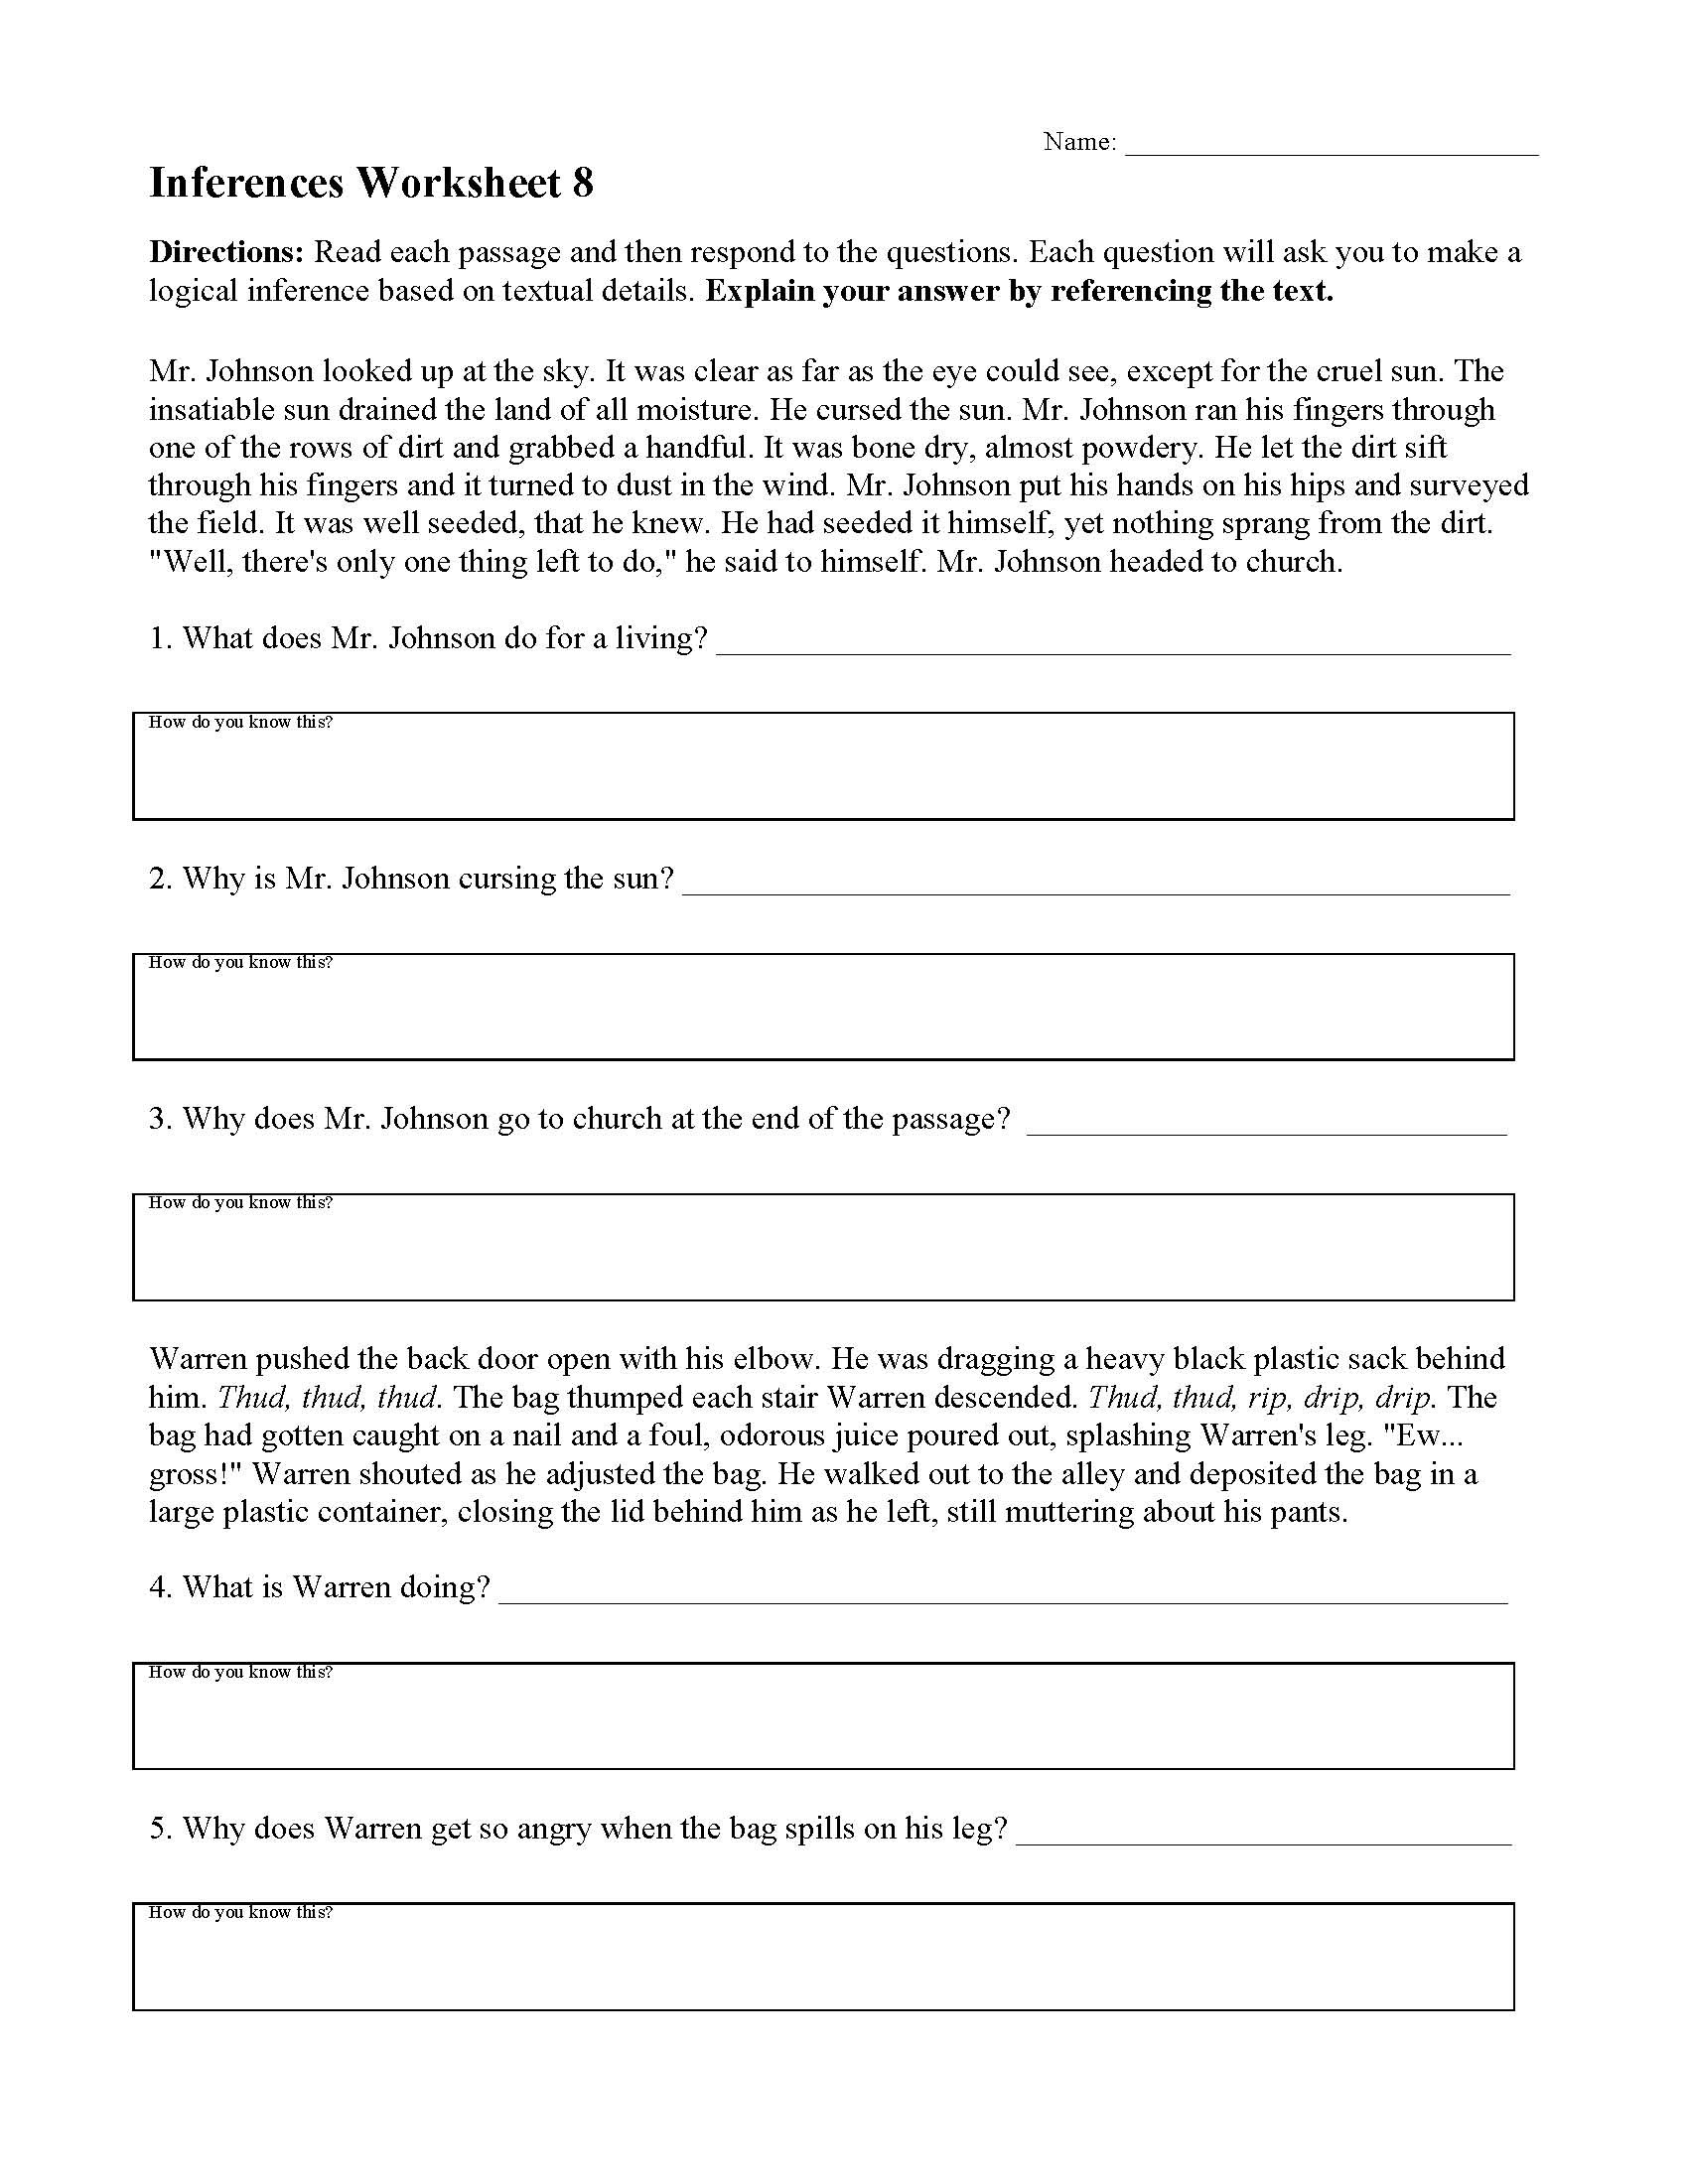 Read and Respond Worksheet Inferences Worksheet 8